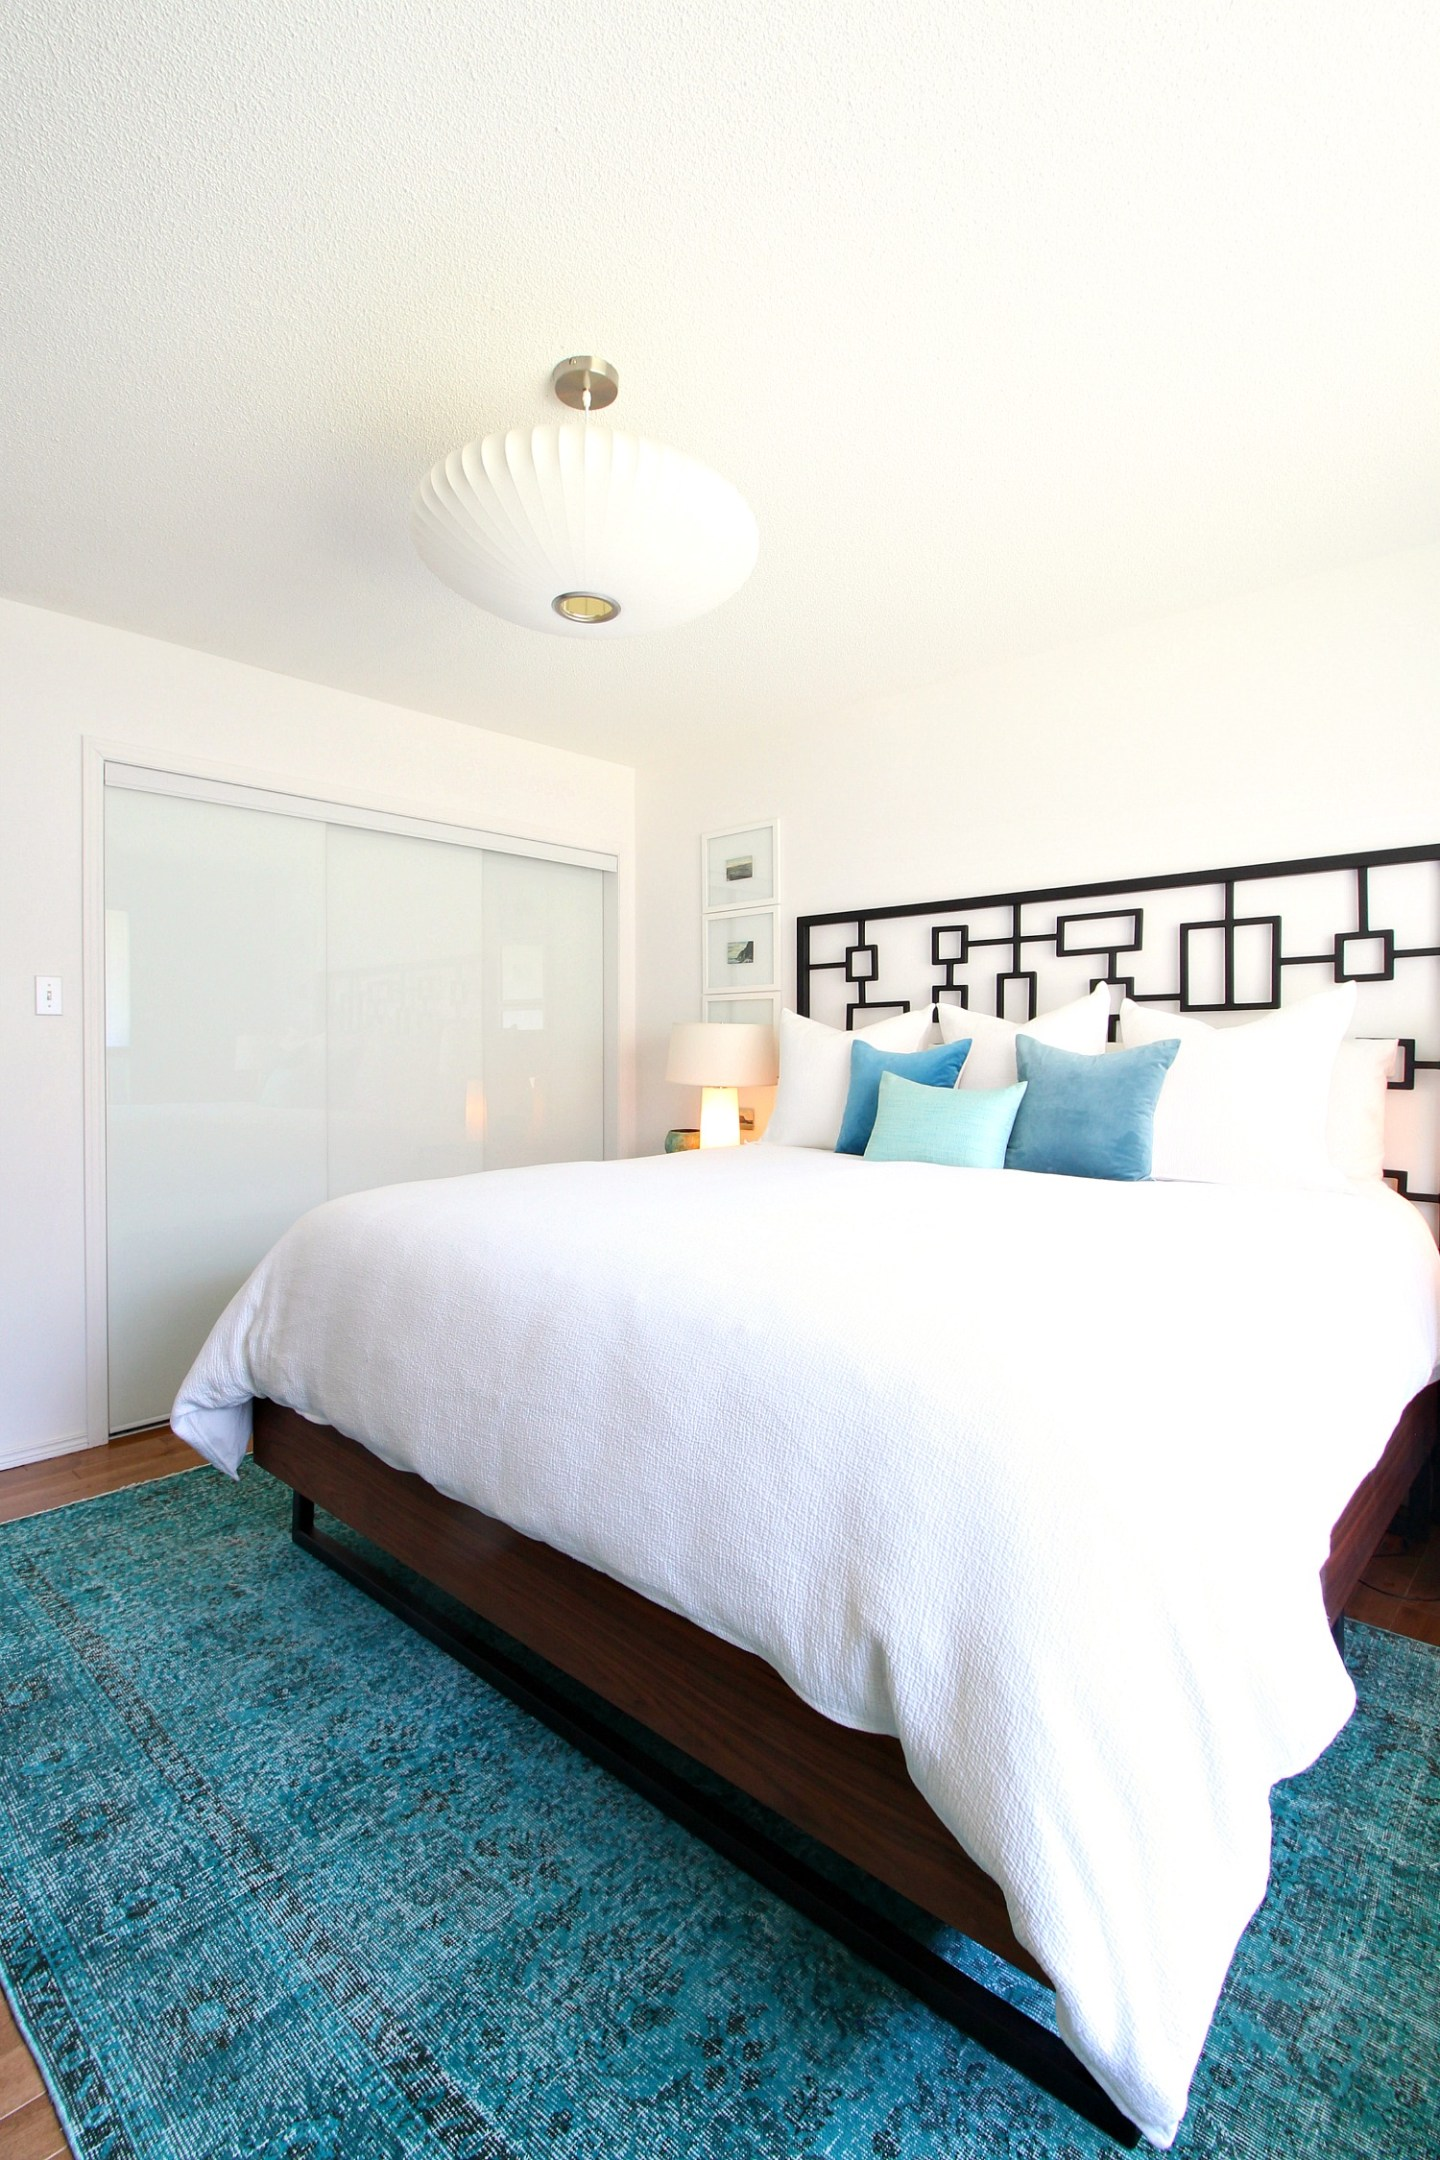 Choosing a Vintage Rug for the Master Bedroom (from Revival Rugs)